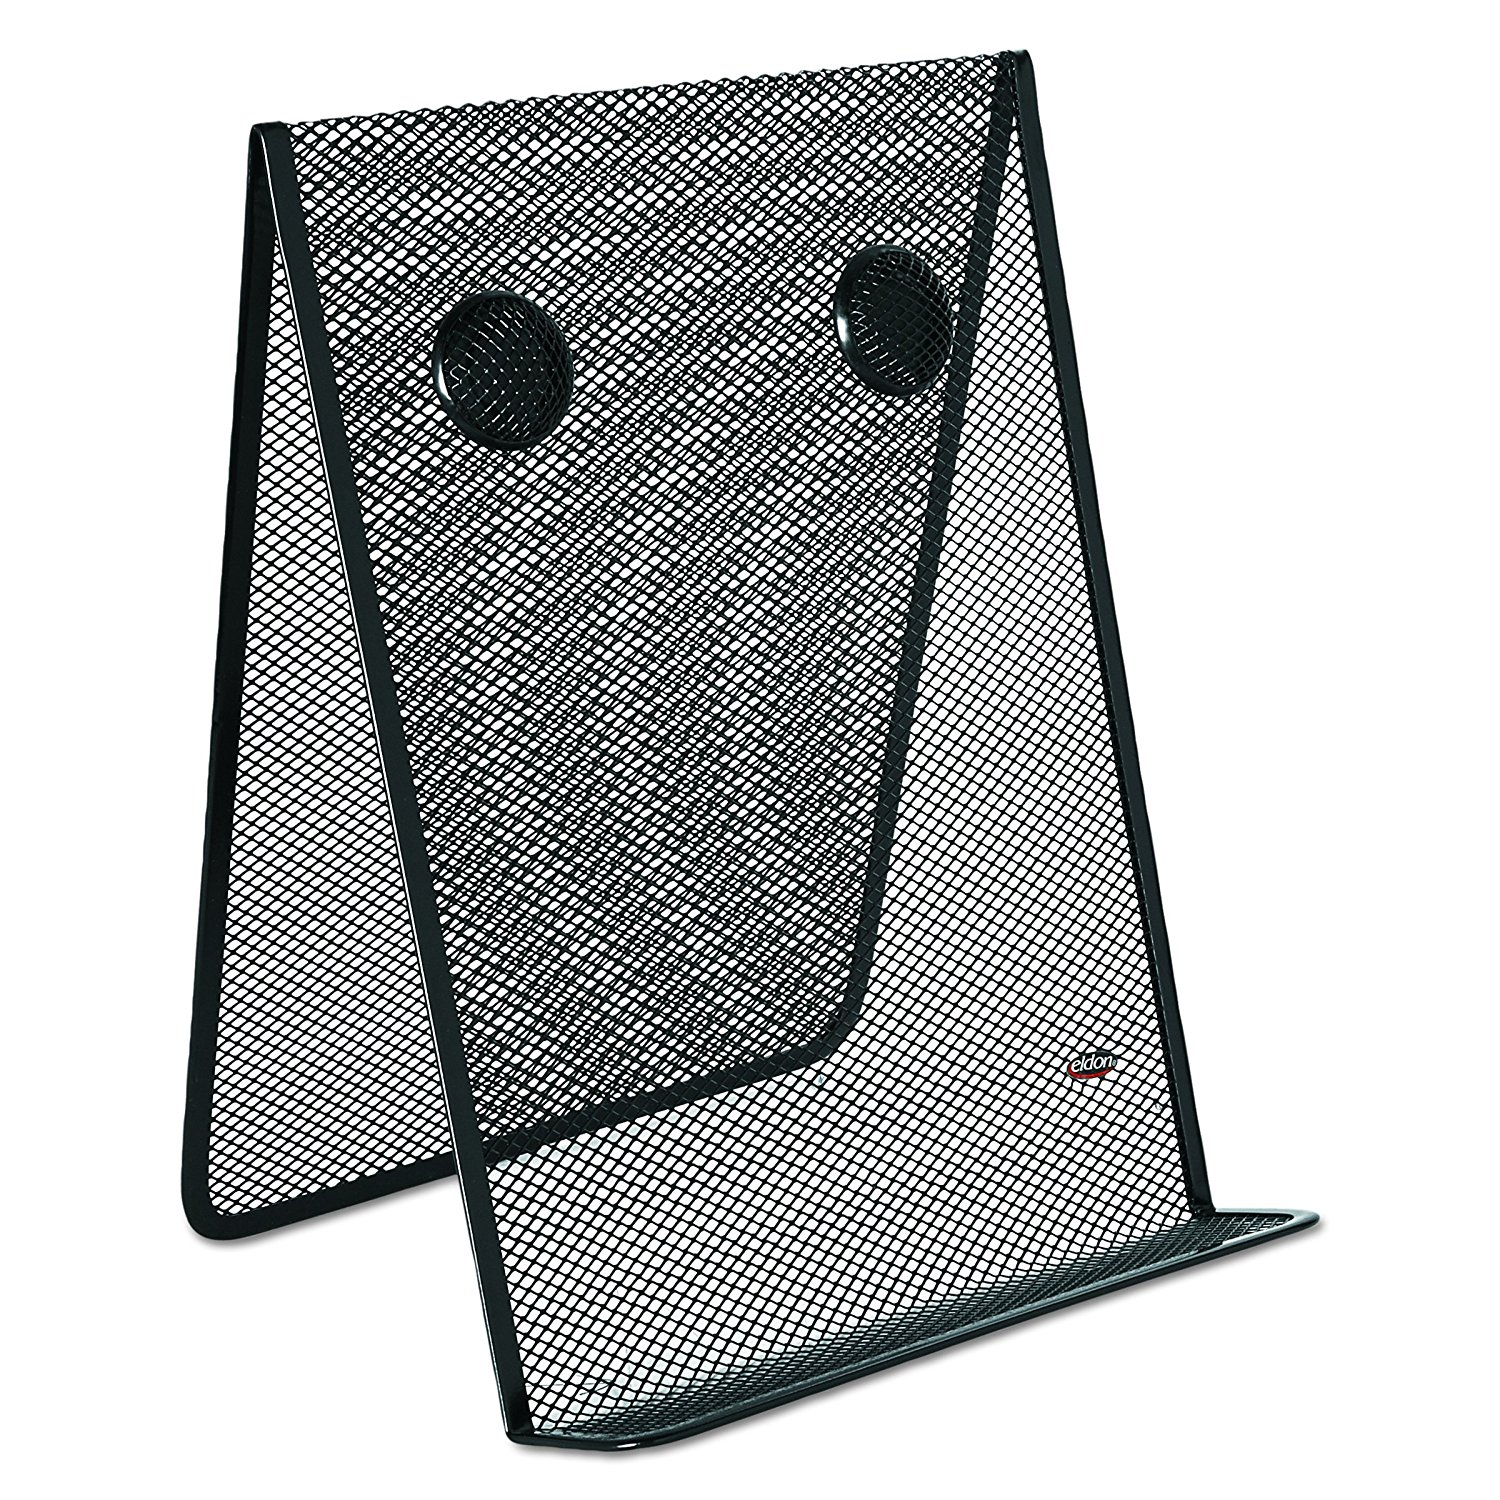 Mesh Collection Nesting Document Holder, Letter-Size, Black (L39C95POBLA), Freestanding desktop copyholder lets you view documents at eye level with less head and.., By Rolodex